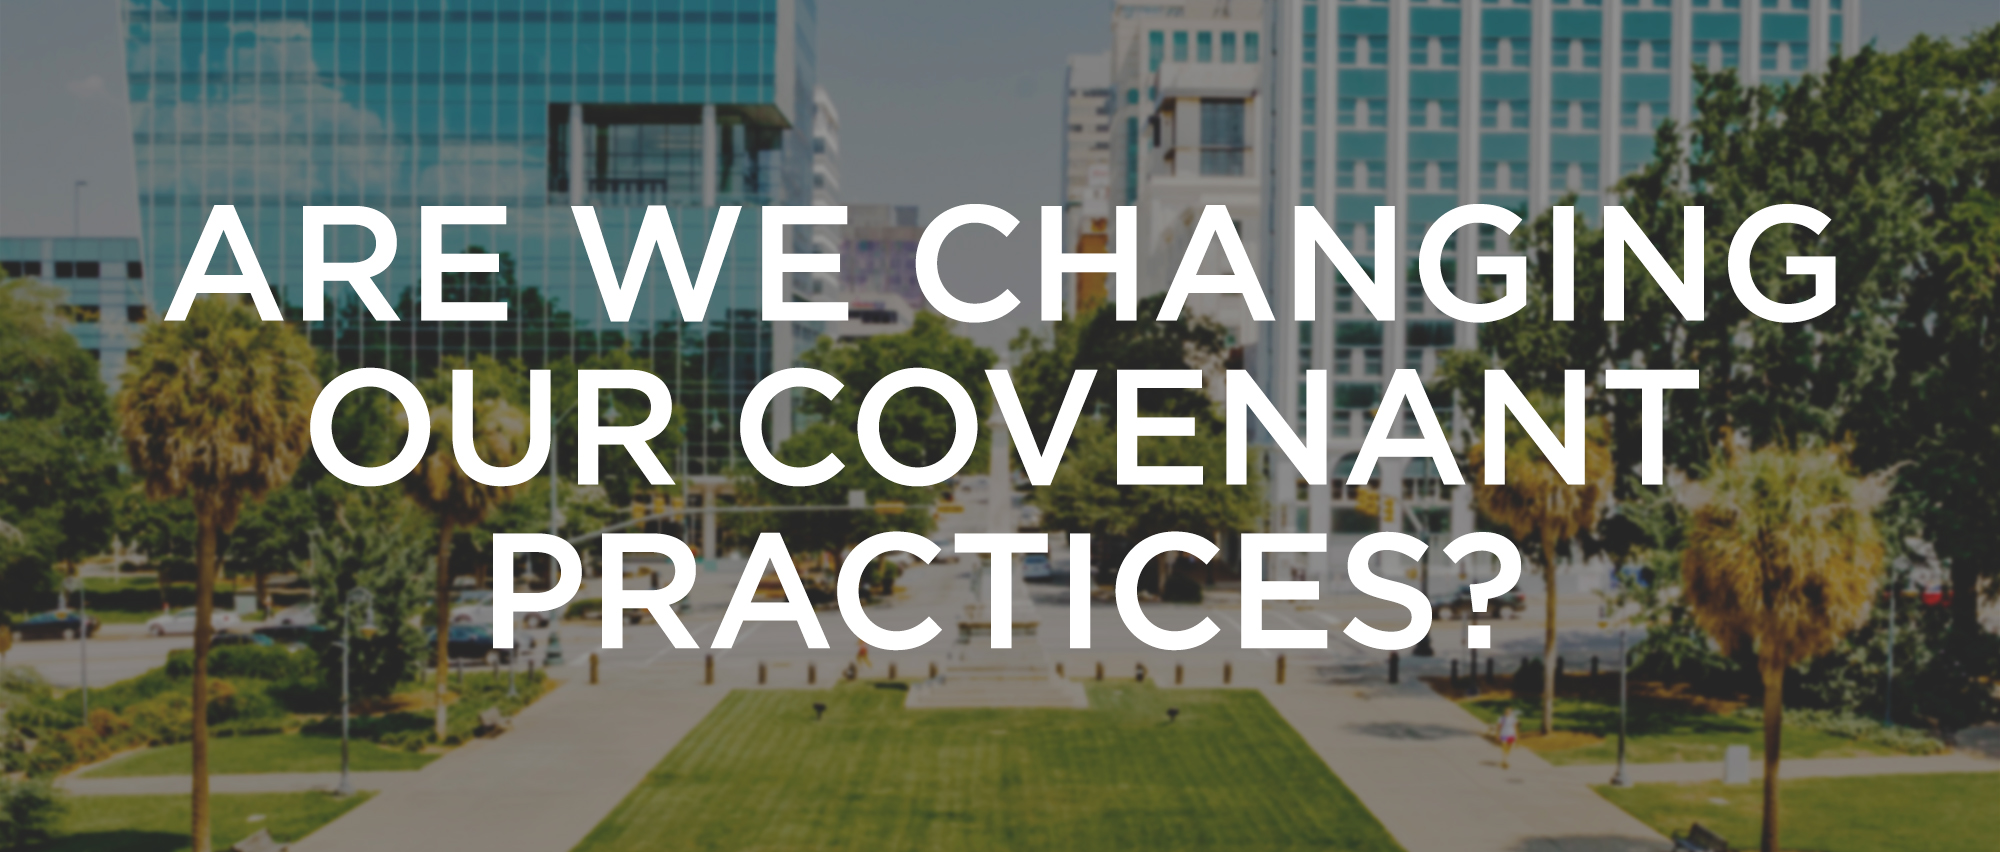 Are We Changing Our Covenant Practices.jpg